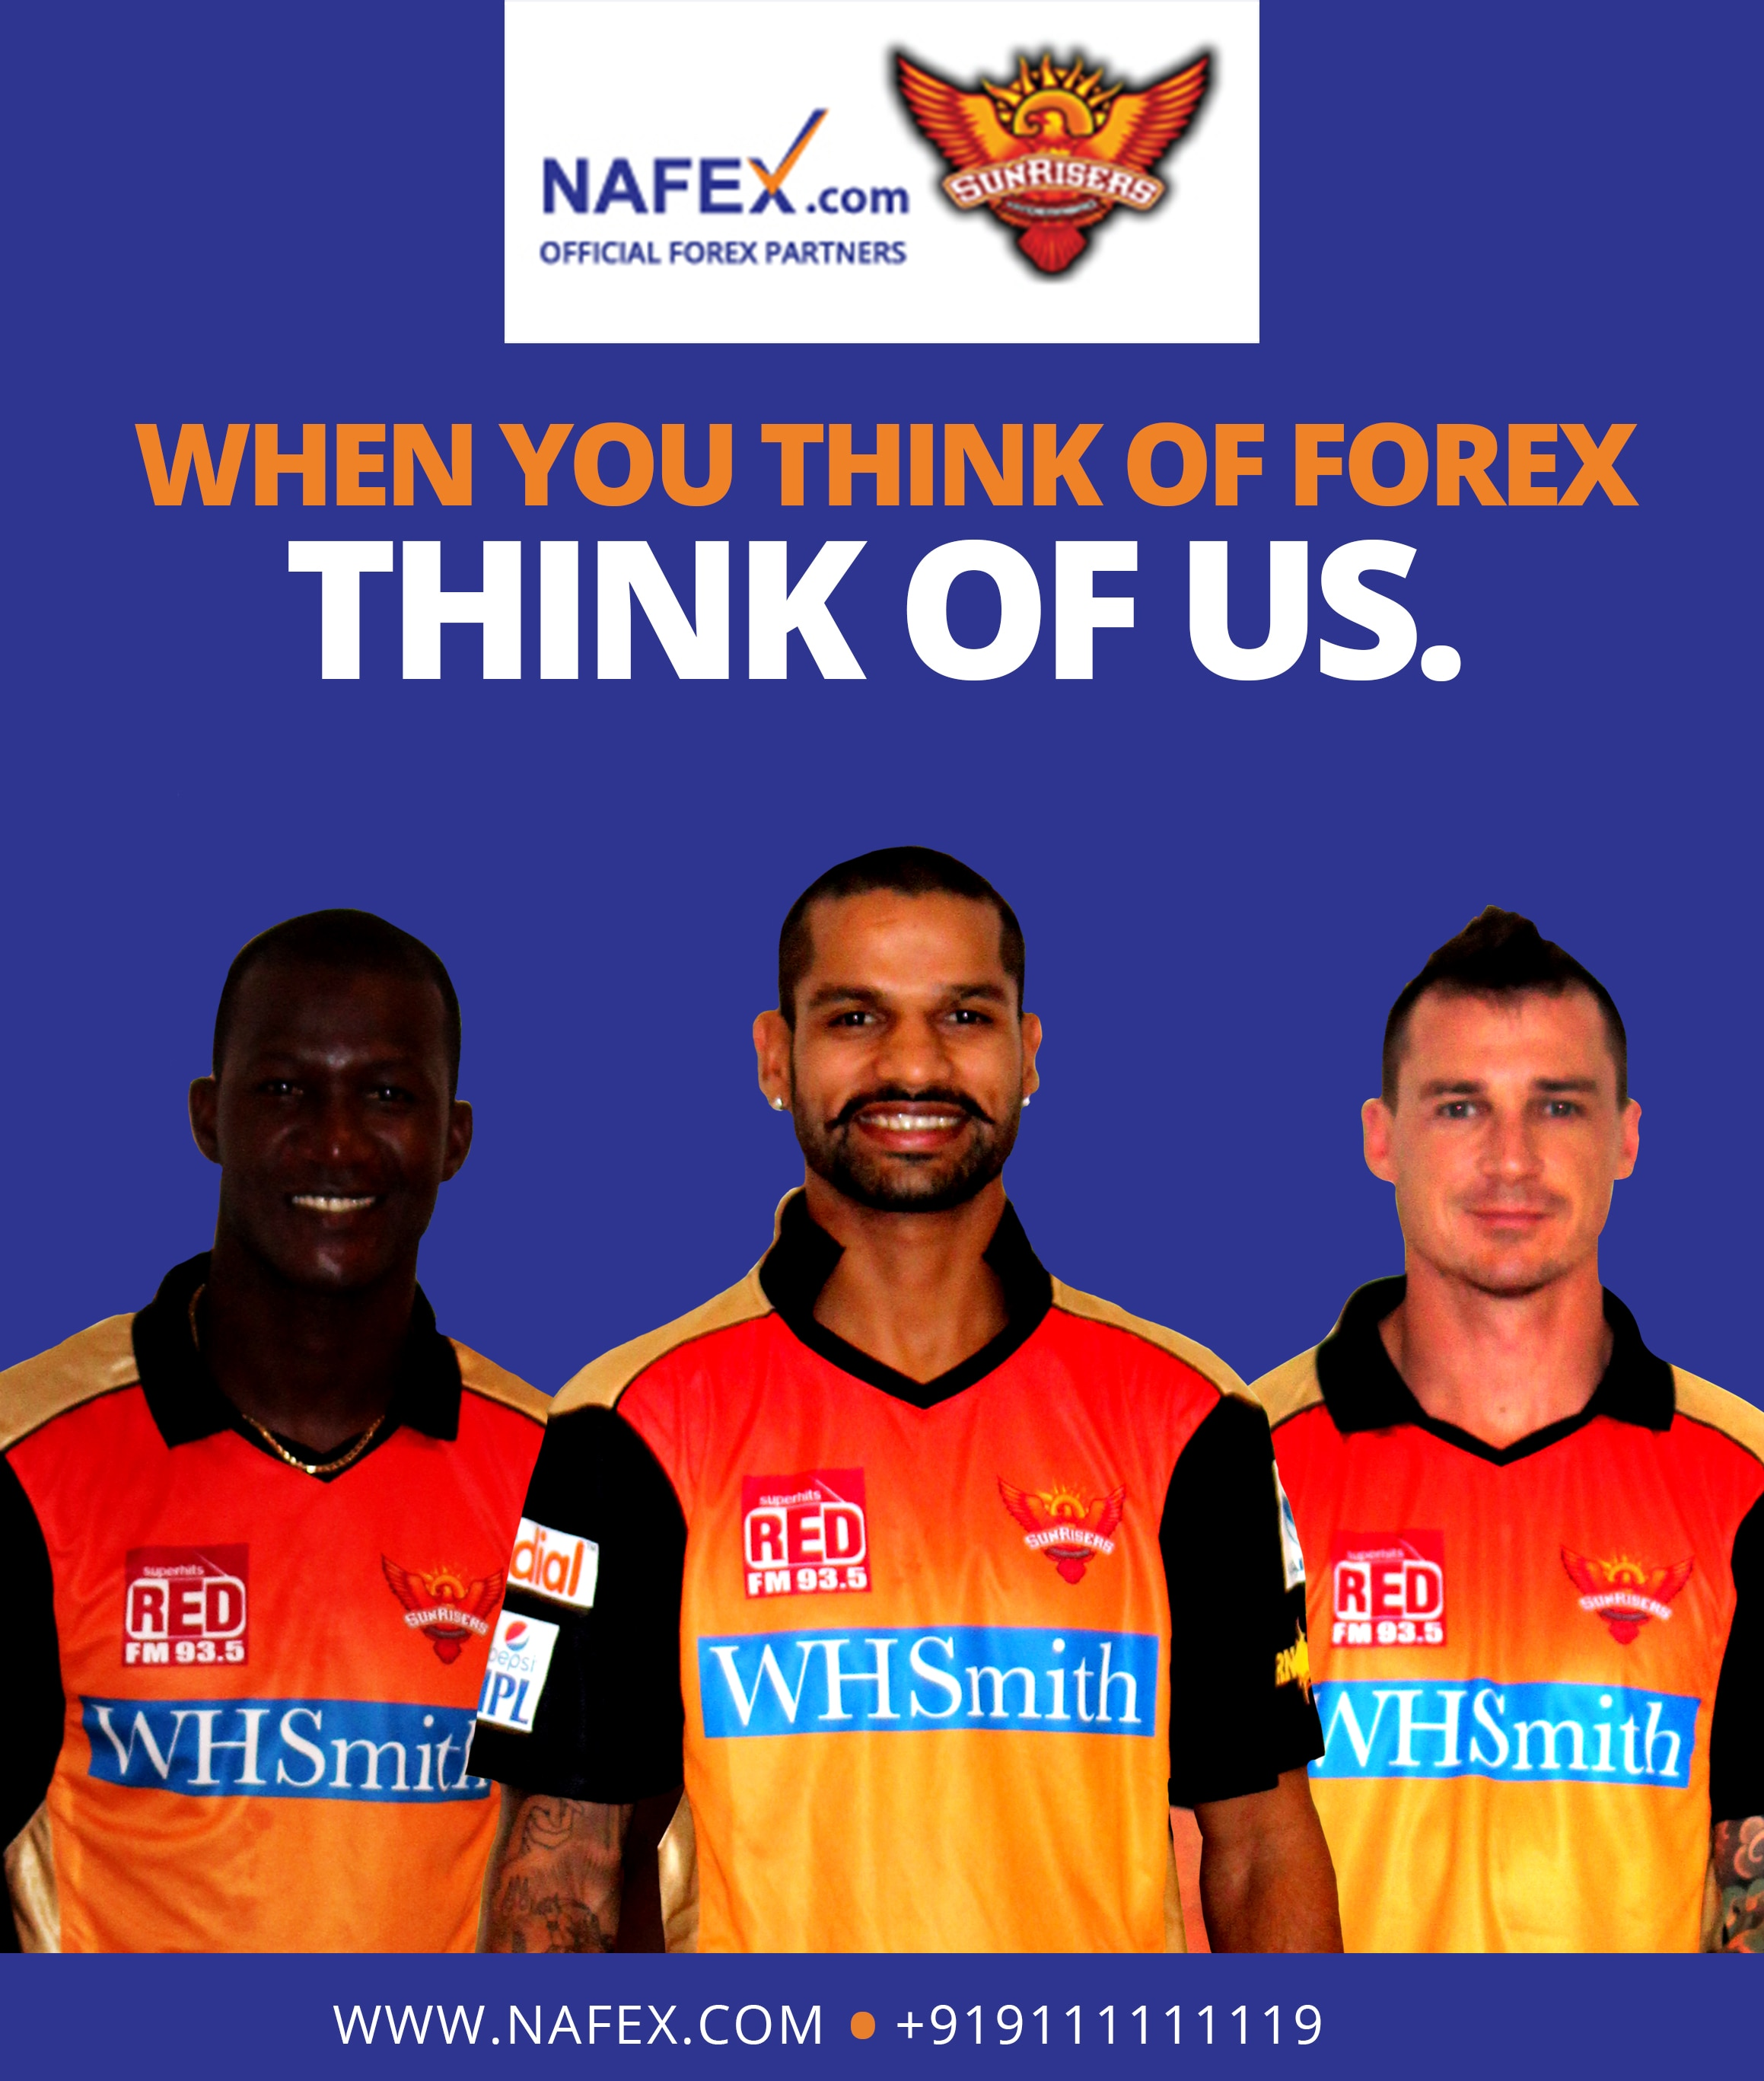 Nafex - Kapoorthala Foreign Currency Exchange Dealers Agents Kapoorthala, Online Travellers Cheque & Forex Prepaid Card